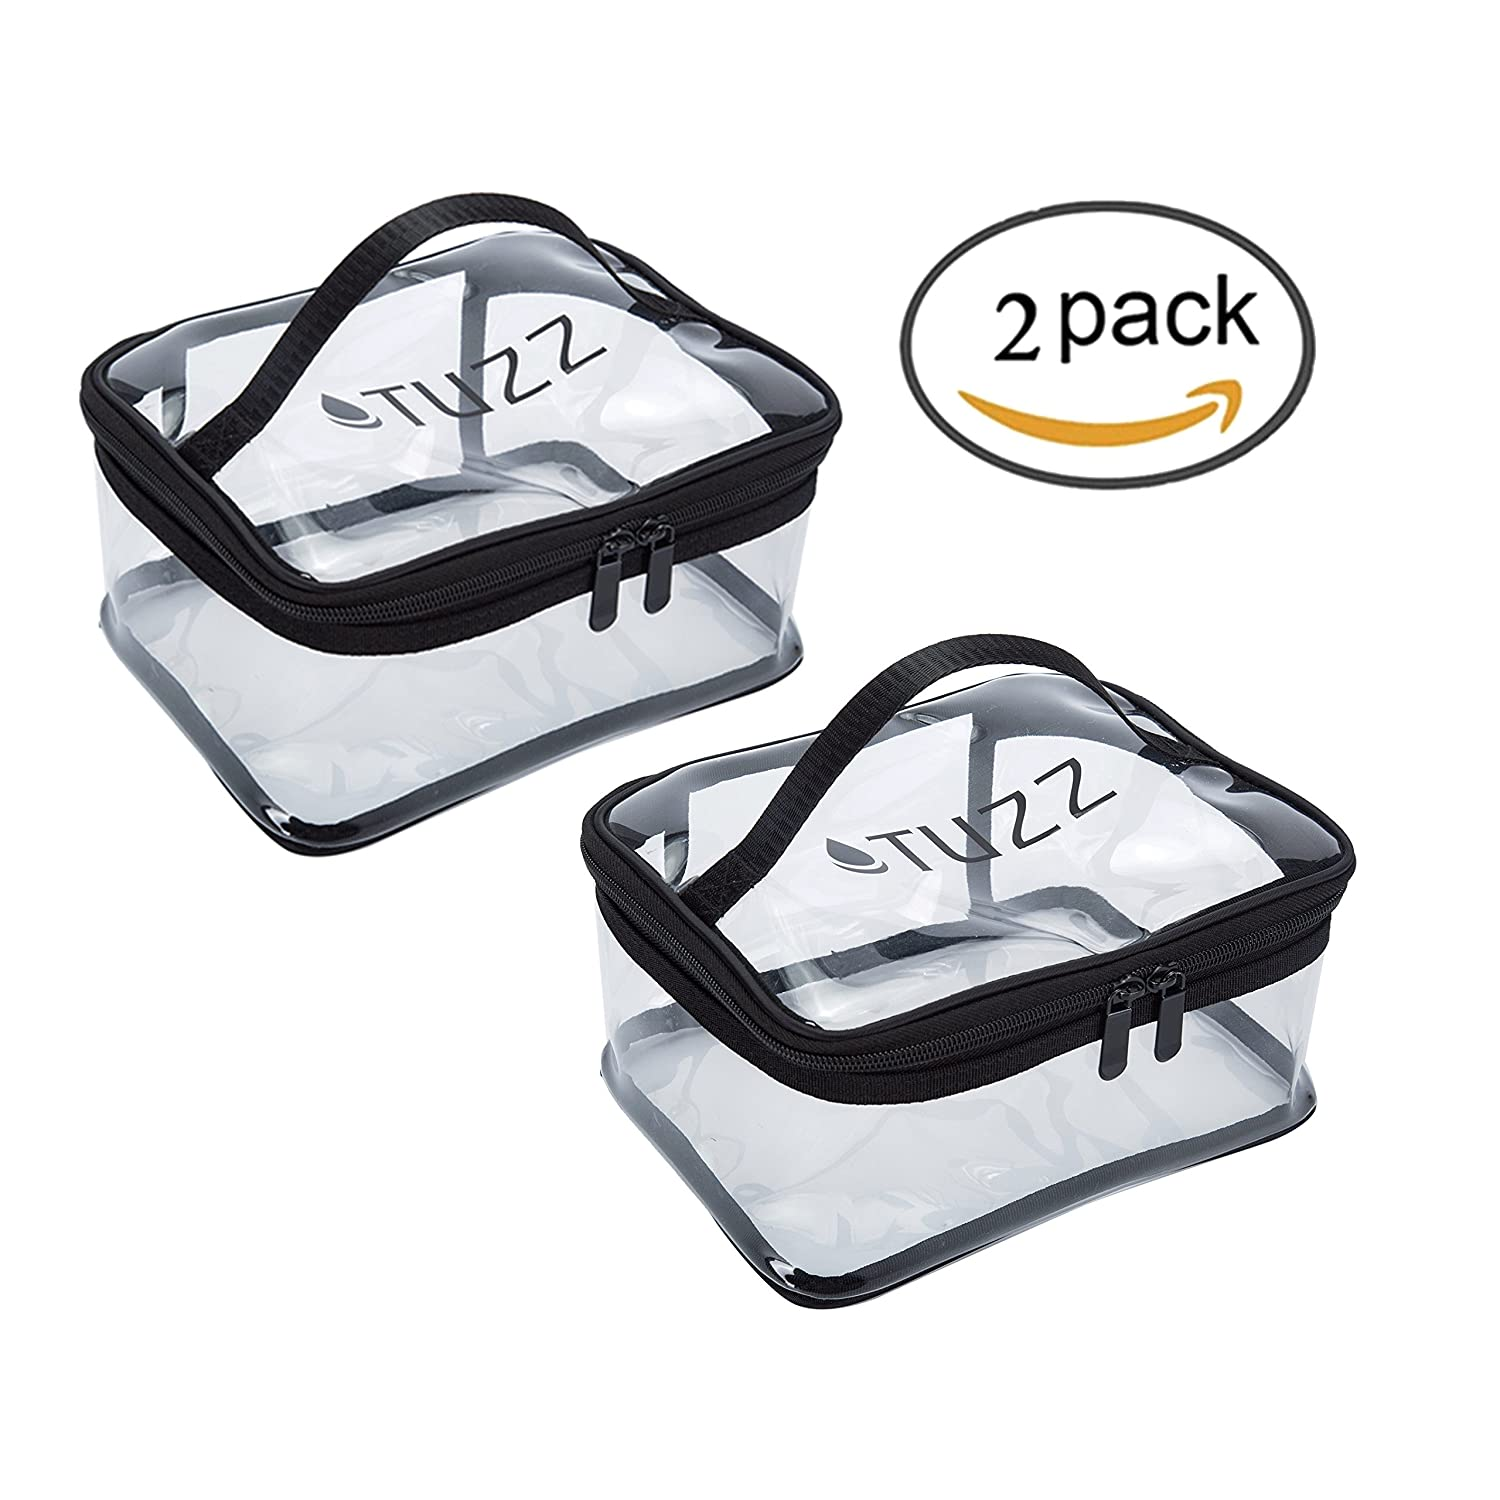 TUZZ TSA Approved Clear Travel Toiletry Bag Quart Bags With Zipper For Men Women, Airline 3-1-1 Carry On Compliant Bag 456667686